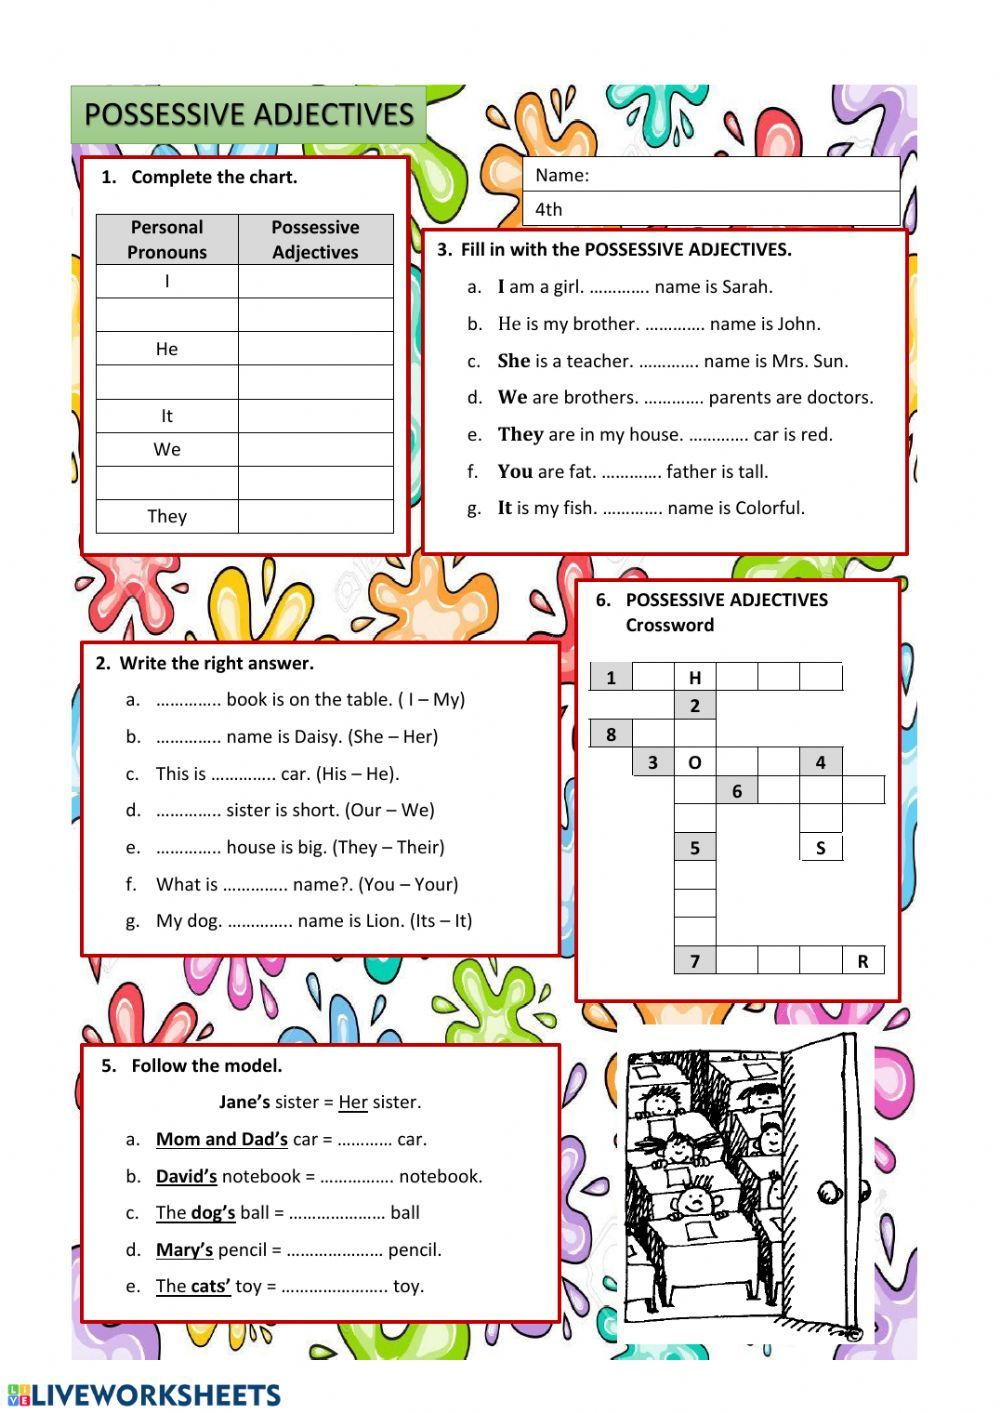 hight resolution of https://dubaikhalifas.com/vocabulary-has-got-possessive-adjectives-english-esl-worksheets-for-distance-learning-and/